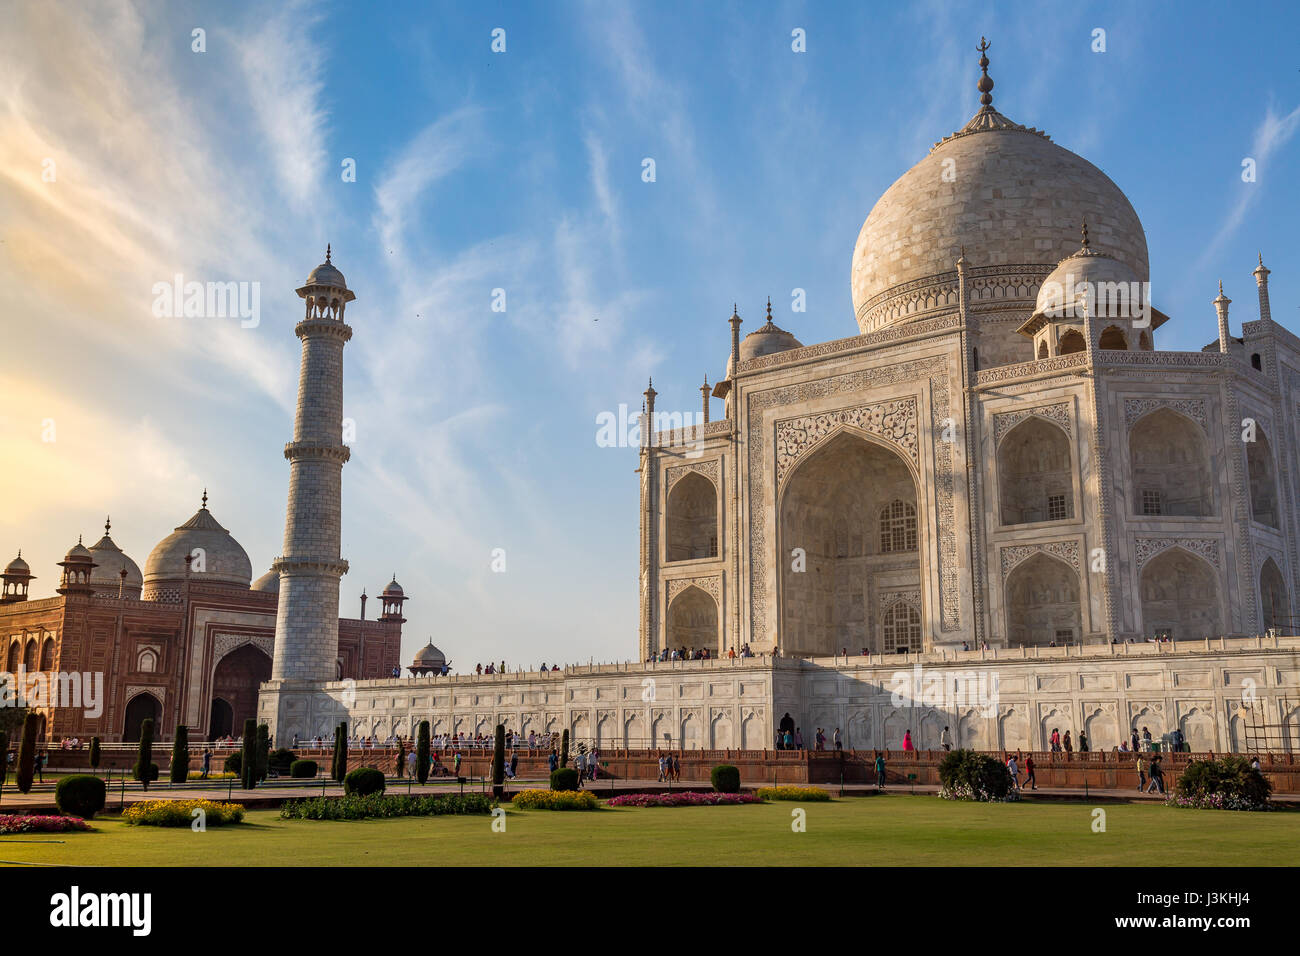 Taj Mahal at Agra India at with a lovely moody sunset sky. A UNESCO World heritage site at Agra India and a primary - Stock Image